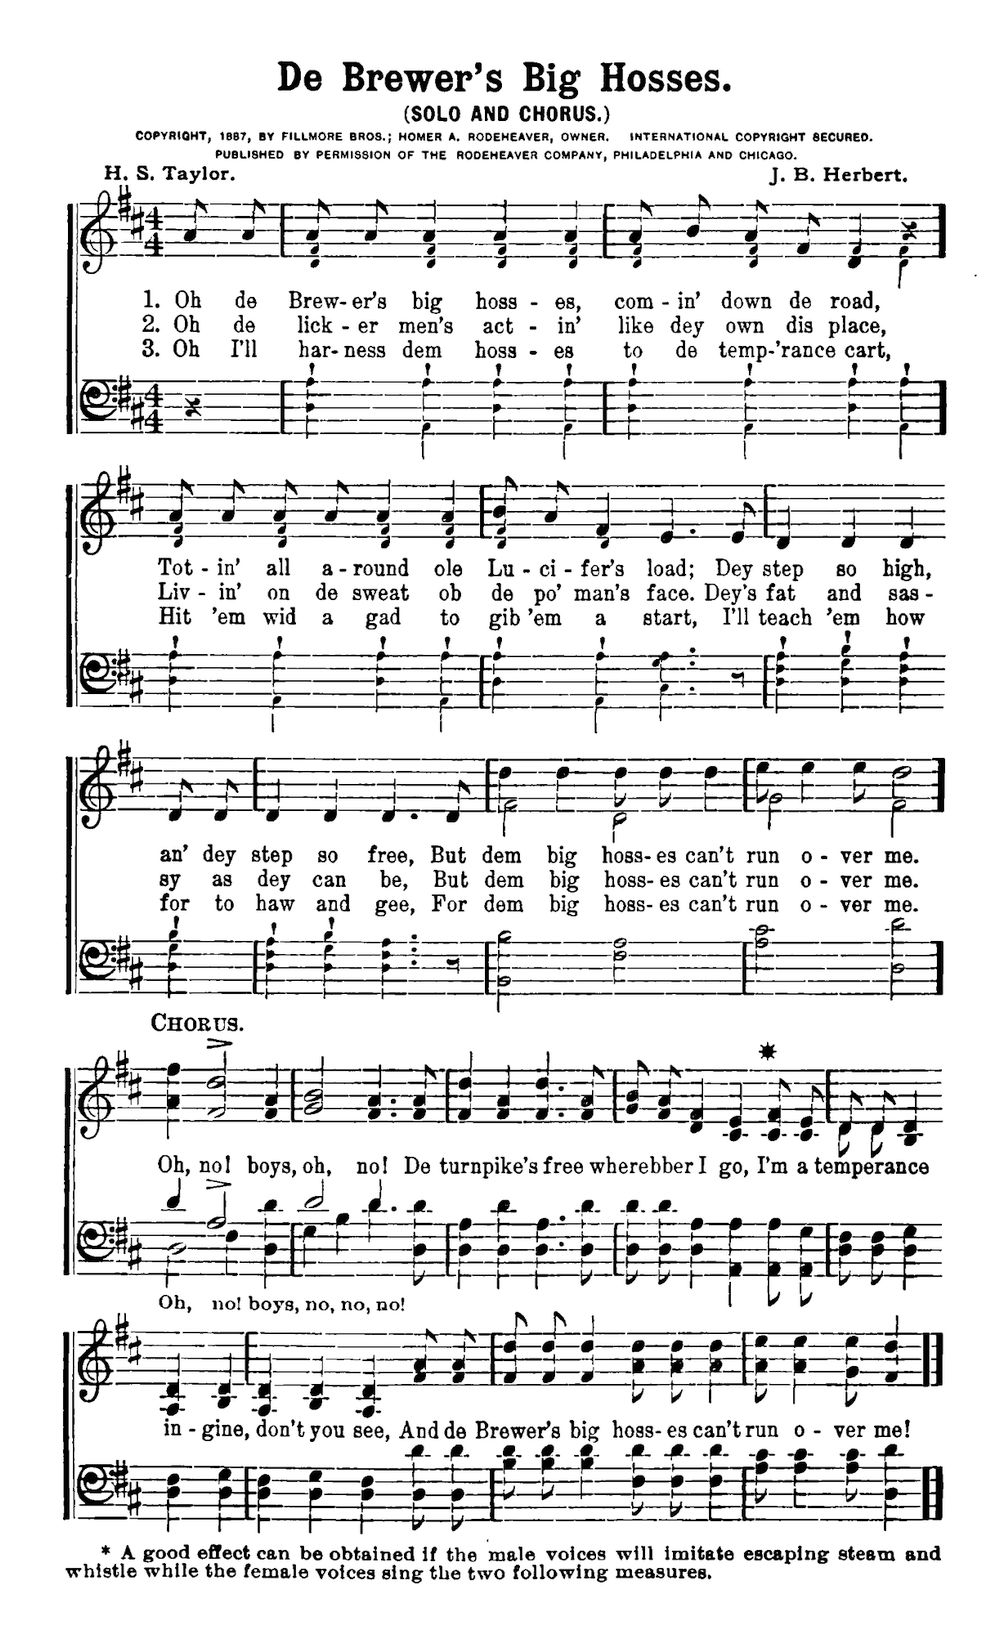 Musical Score Of The Above